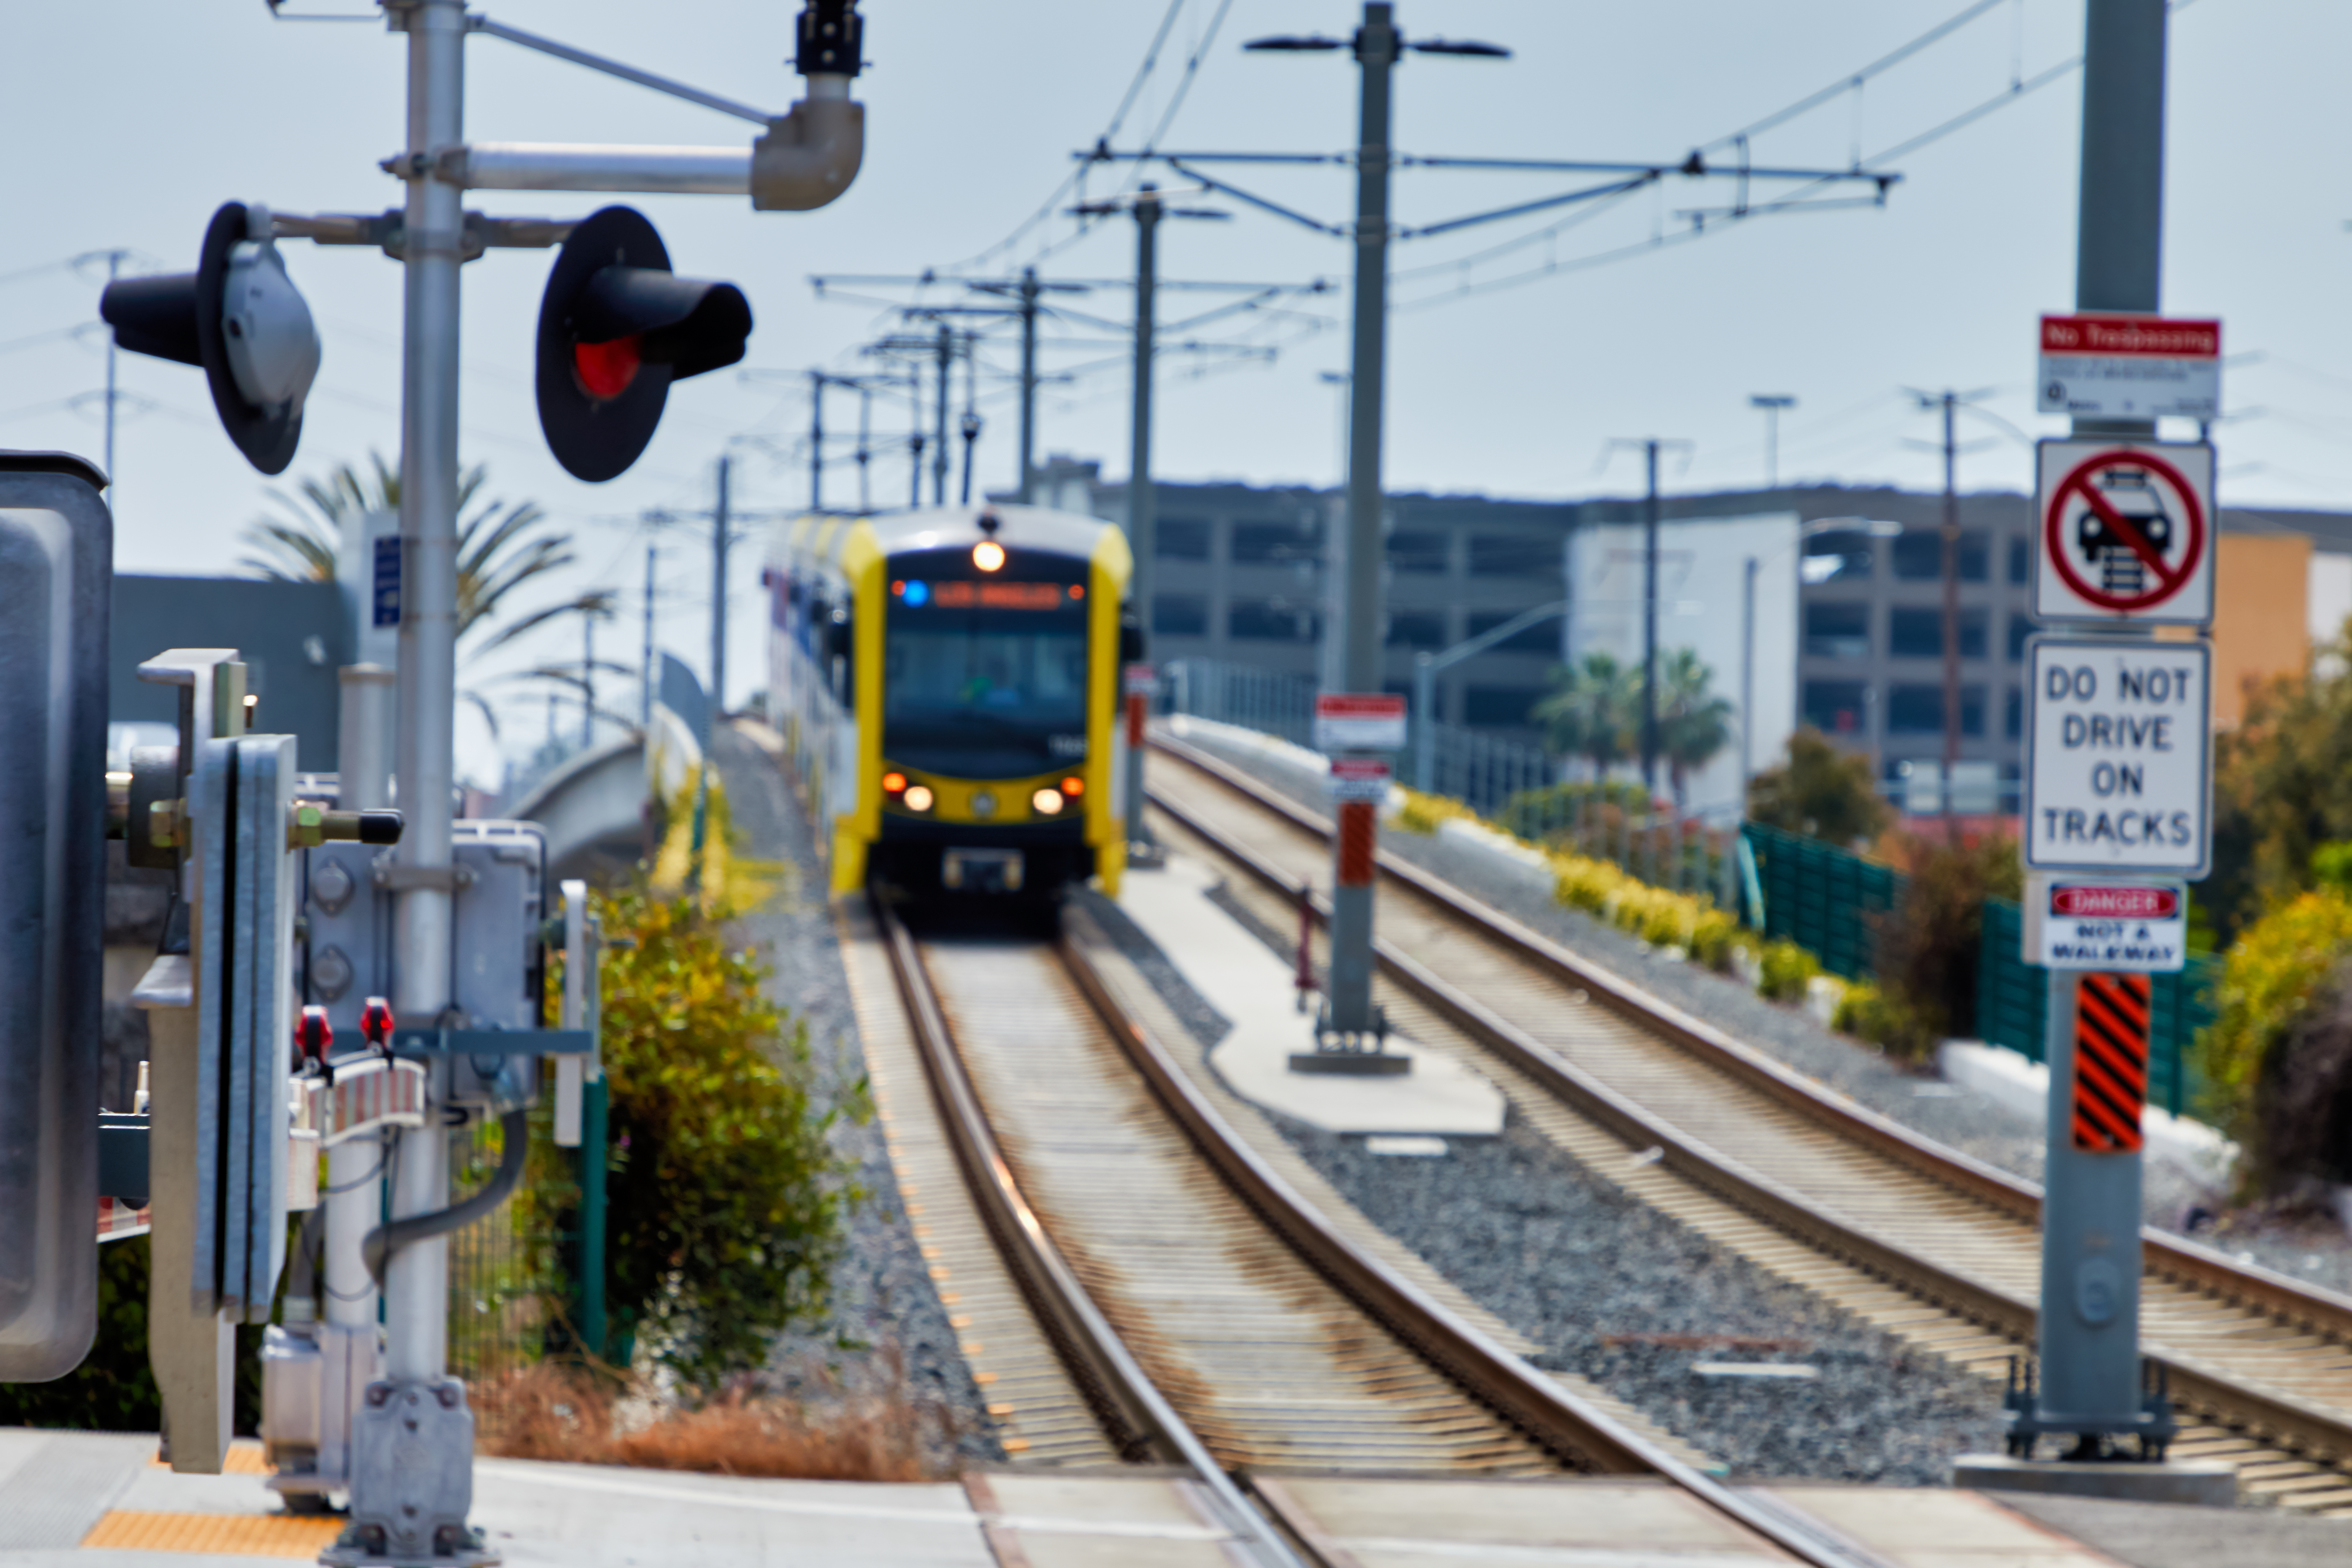 A yellow and black train travels down train tracks and below overheard wires.